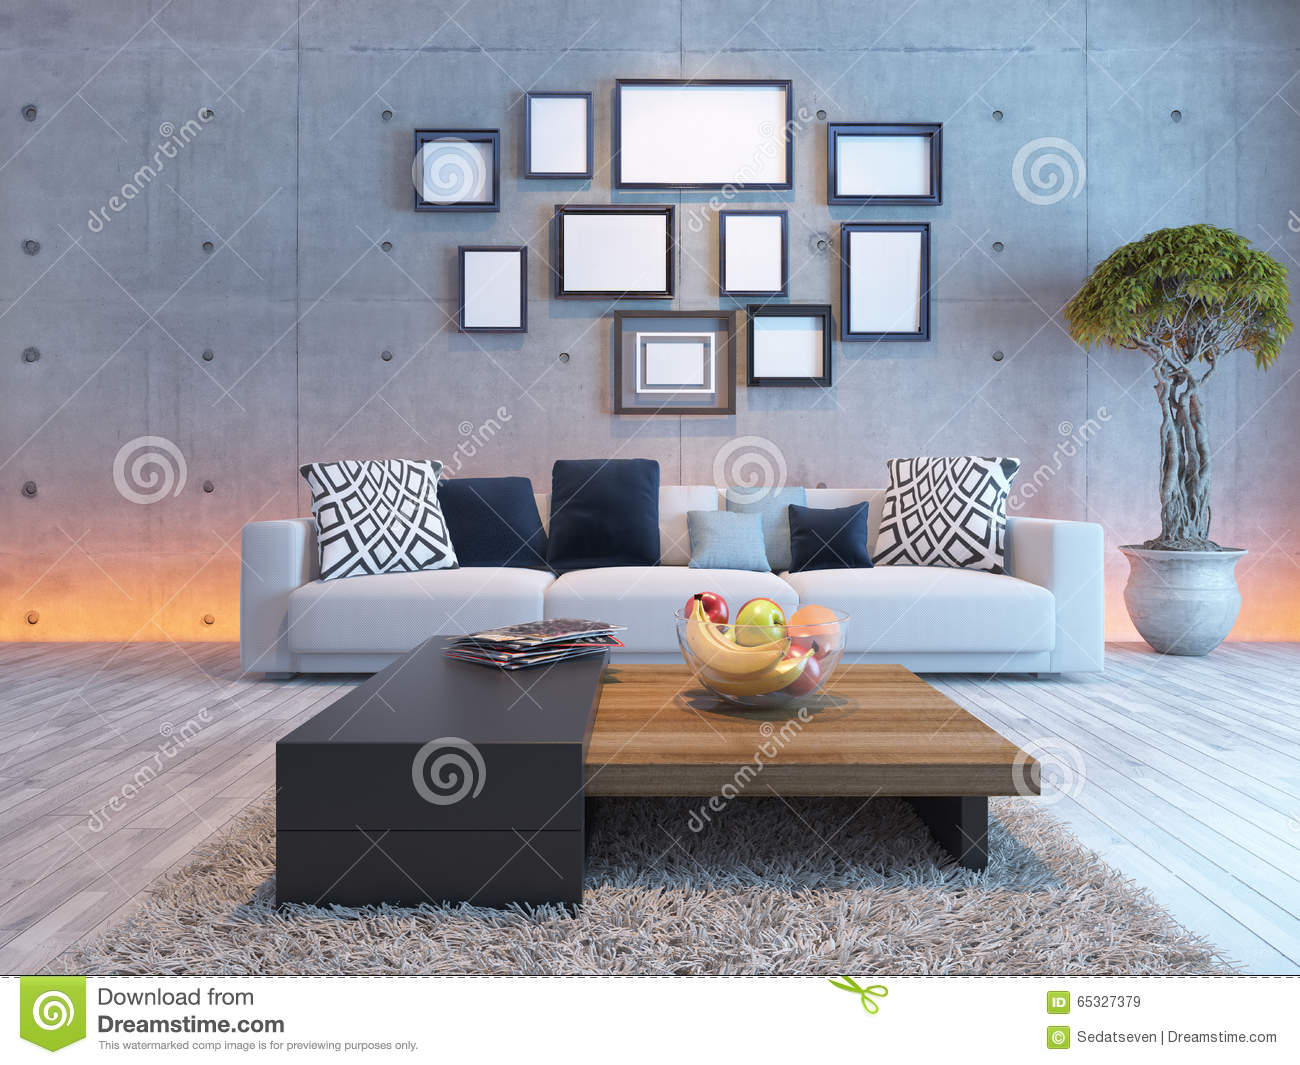 frames for living room walls old world design ideas interior with concrete wall and picture frame